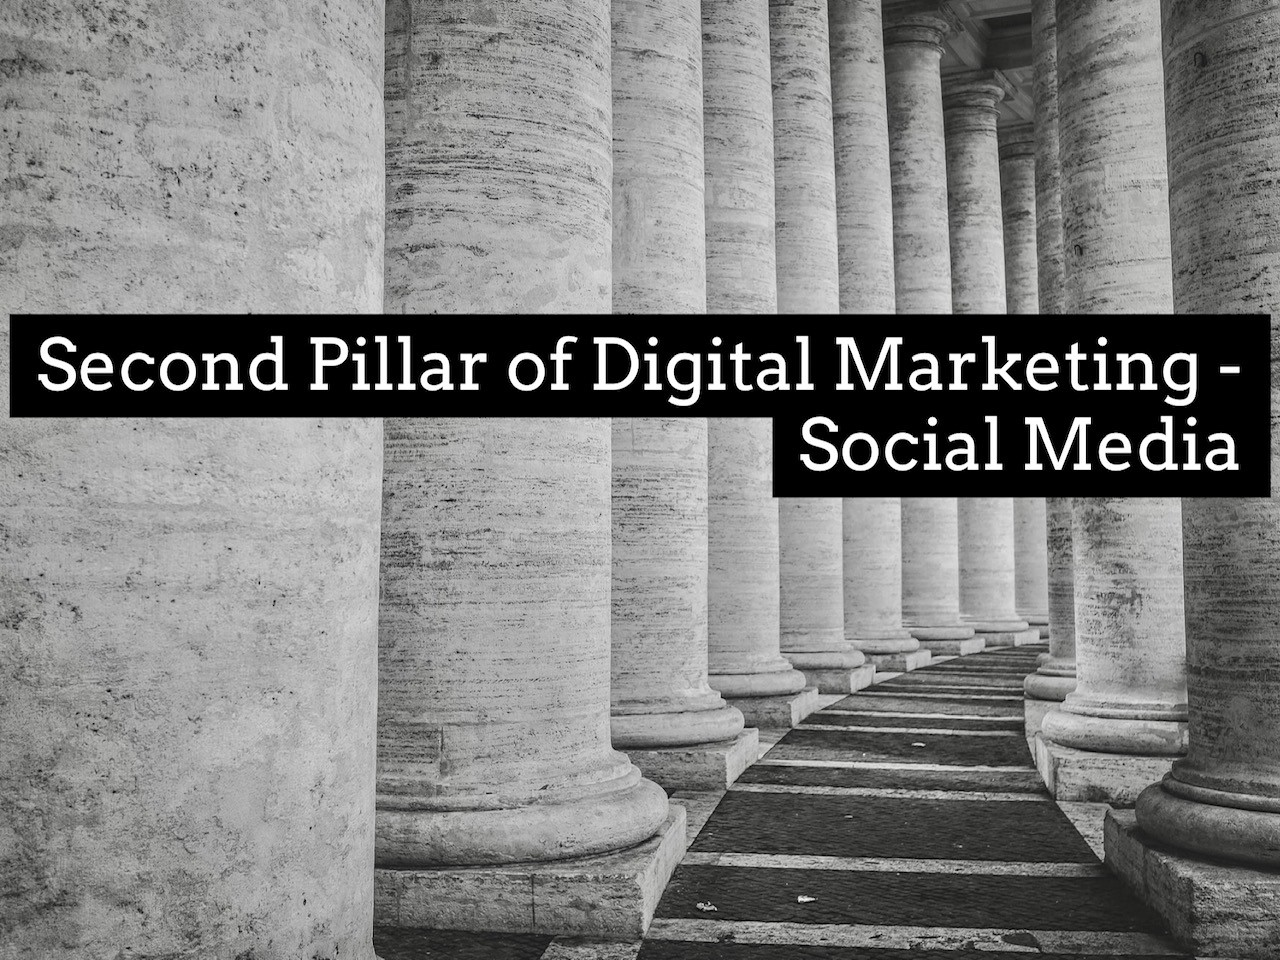 Second Pillar Digital Marketing - Social Media